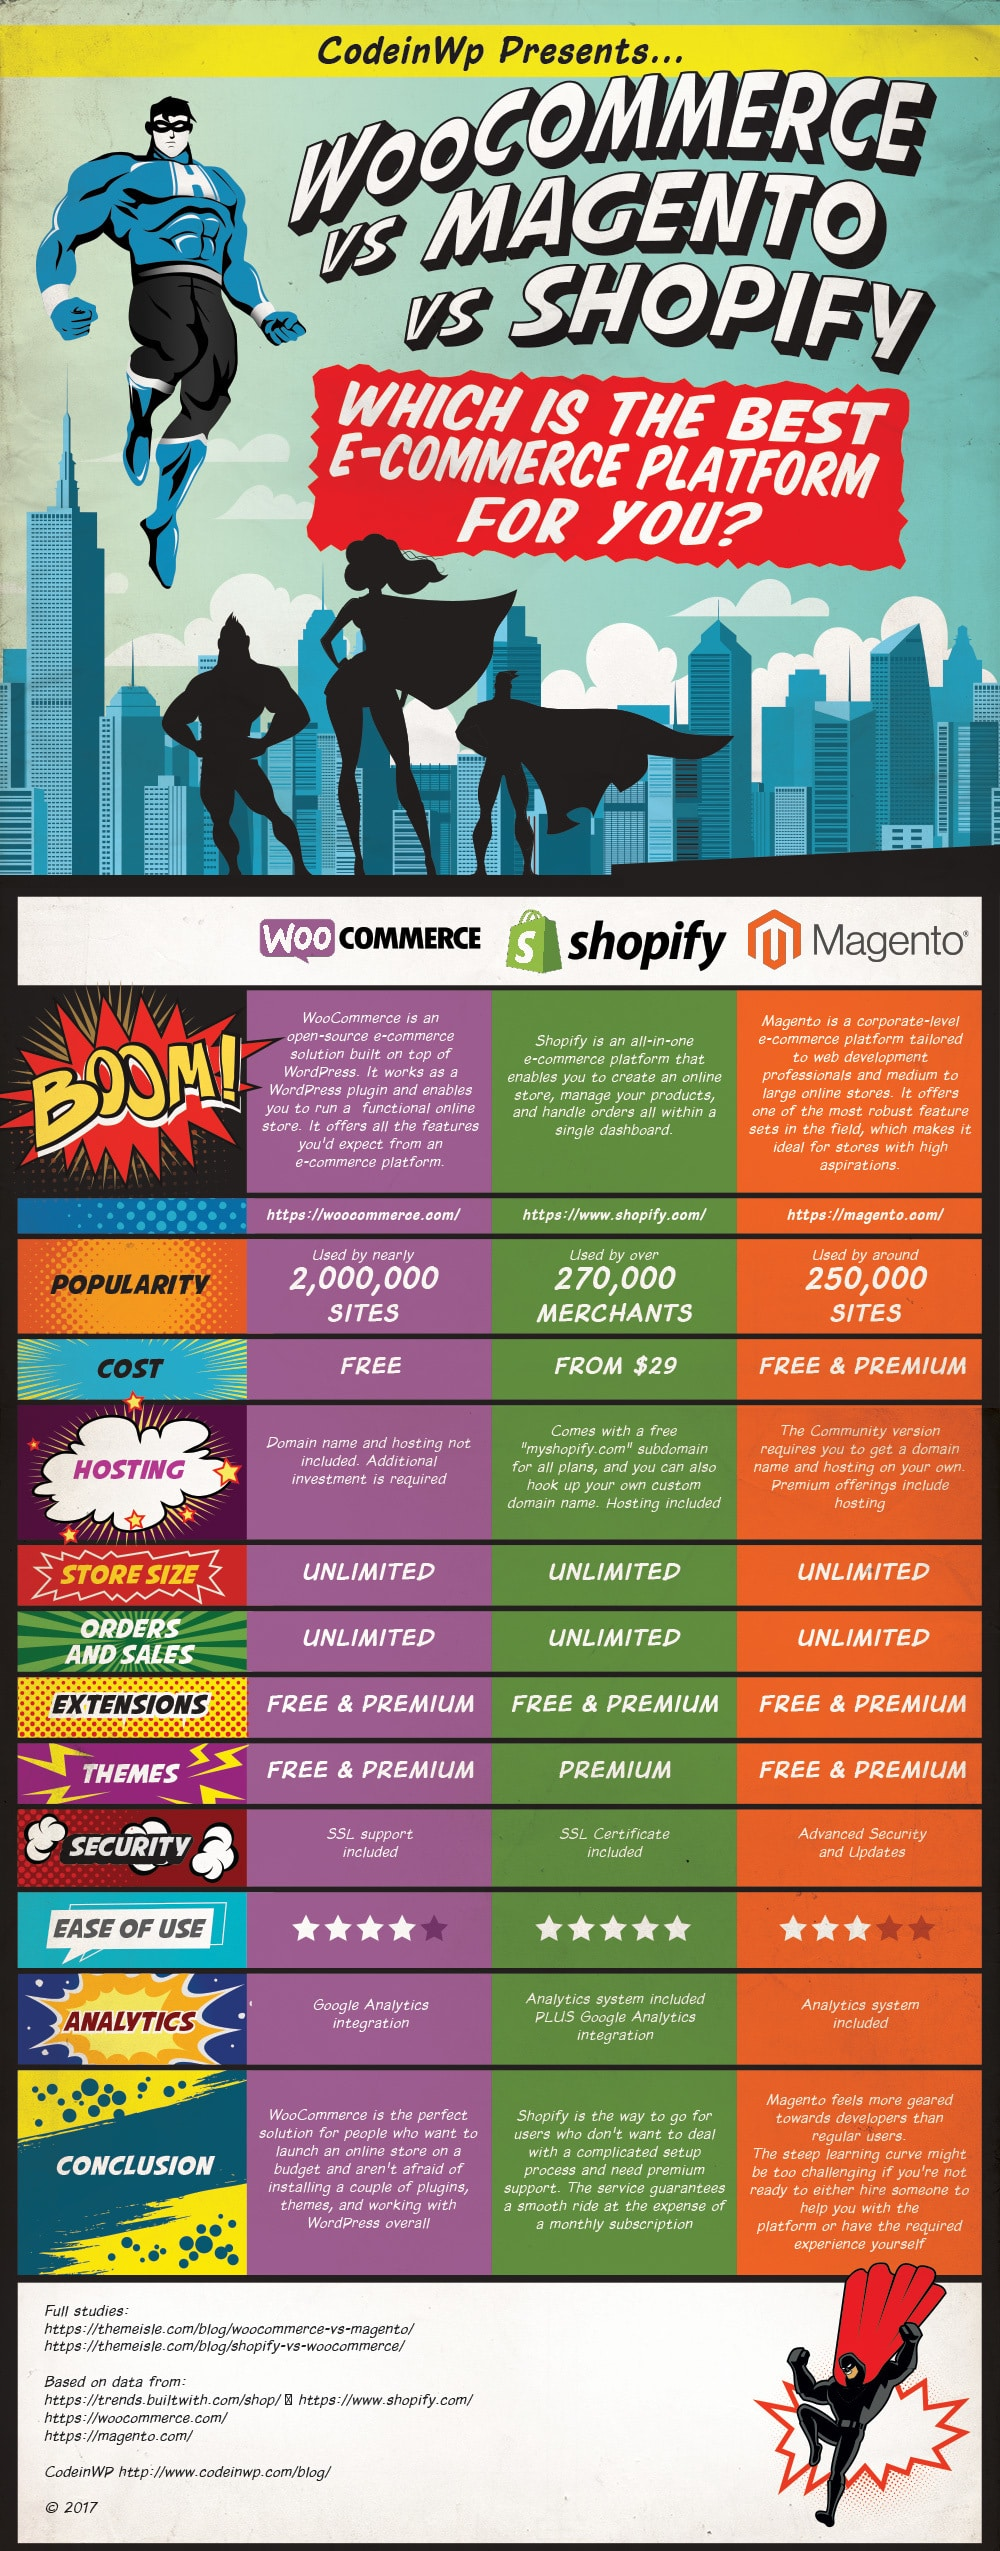 WooCommerce vs Magento vs Shopify